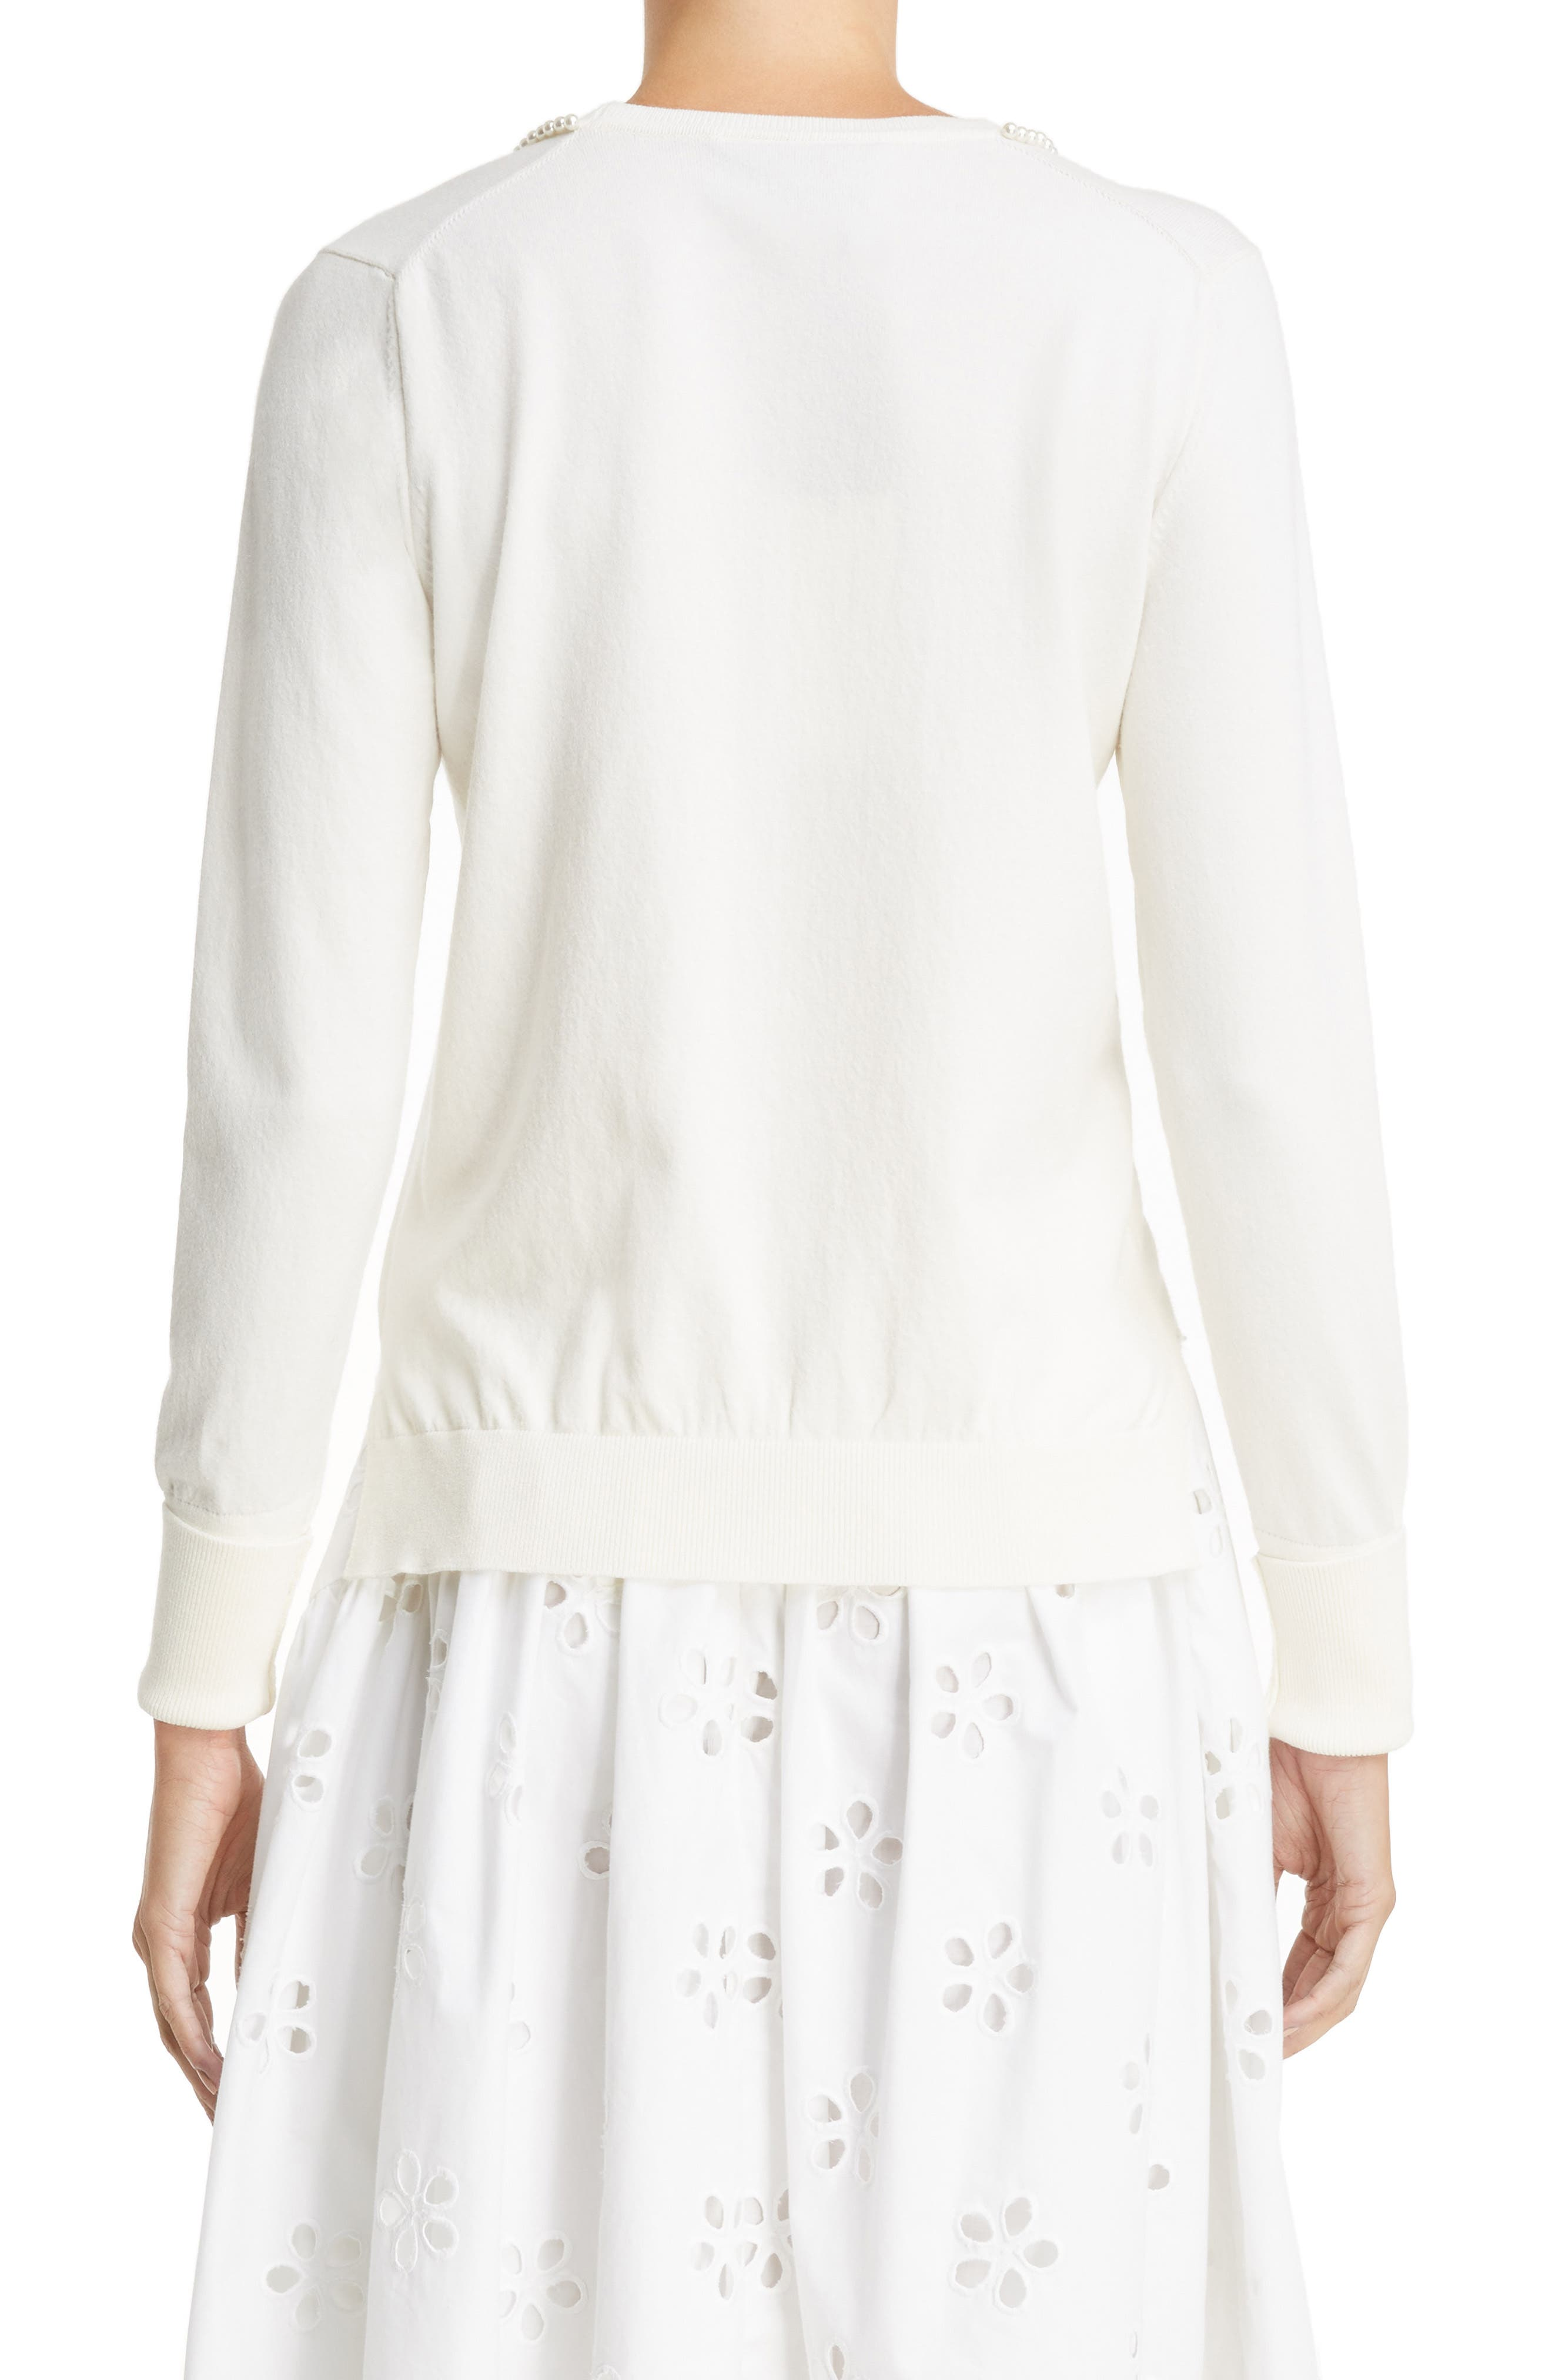 Imitation Pearl Embellished Sweater,                             Alternate thumbnail 2, color,                             Ivory Pearl